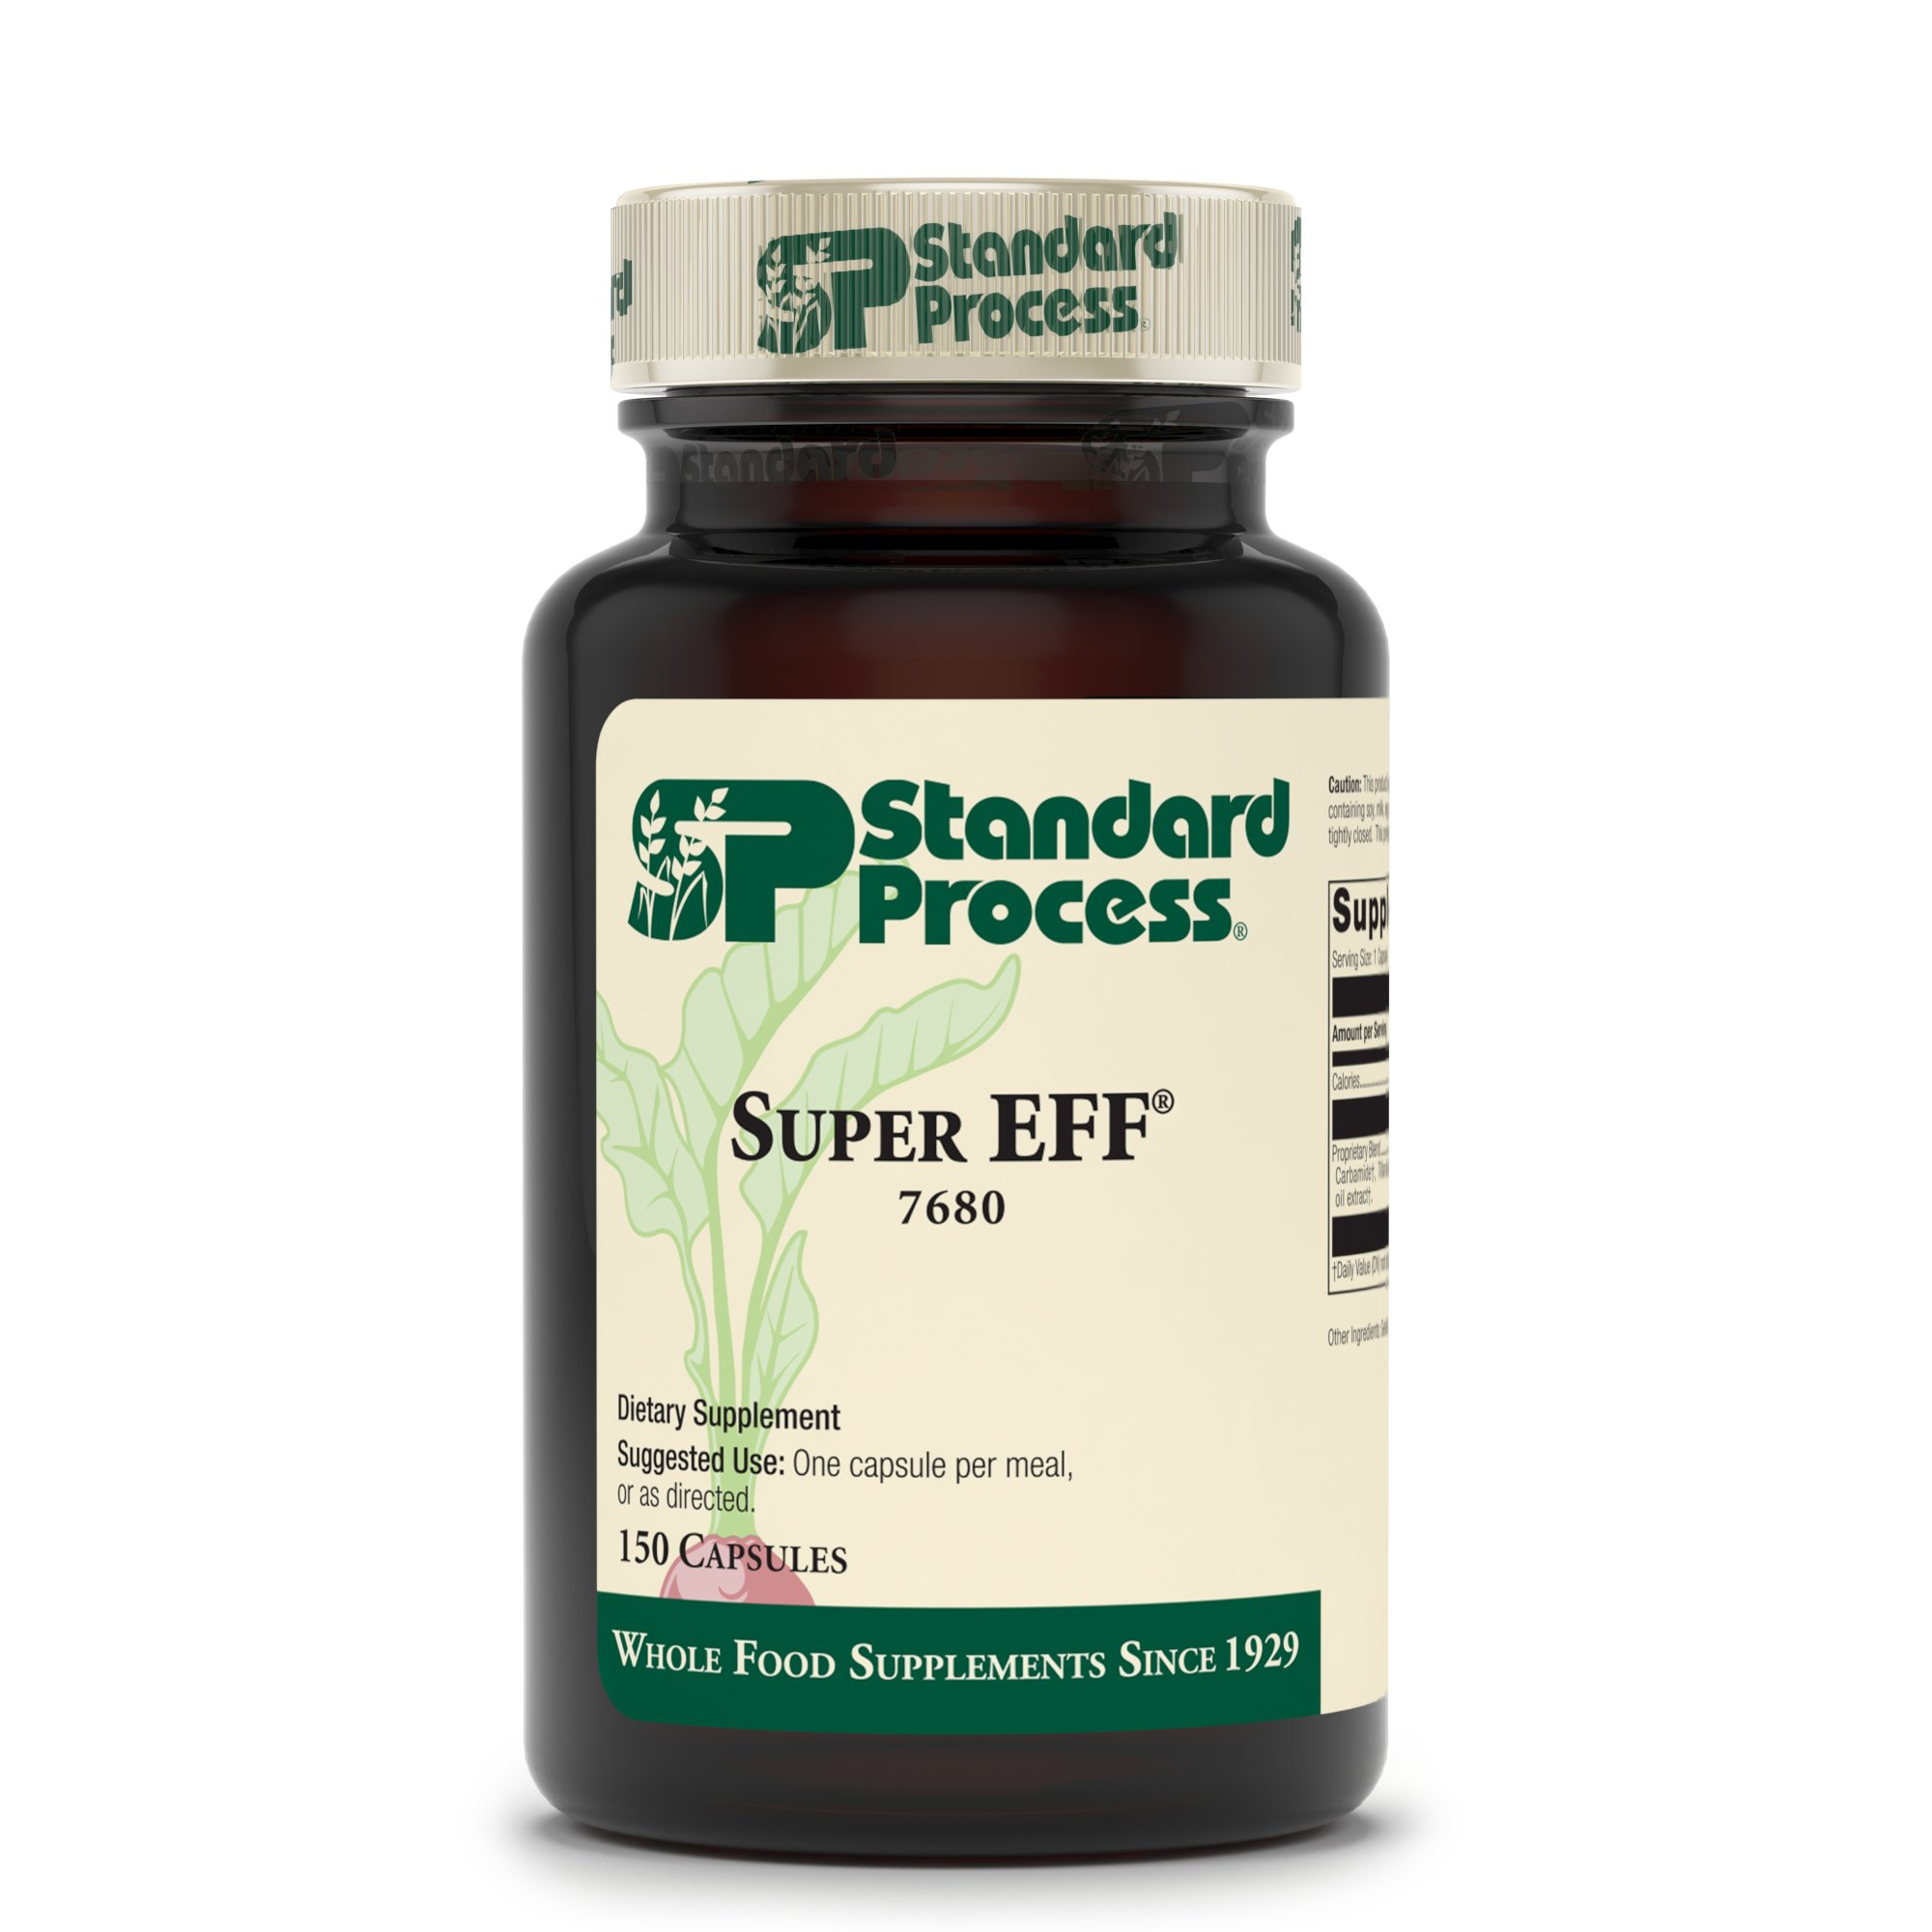 Standard Process - Super-Eff - Supports Nervous System, Cellular Health, Energy Production - 150 Capsules by Standard Process (Image #2)